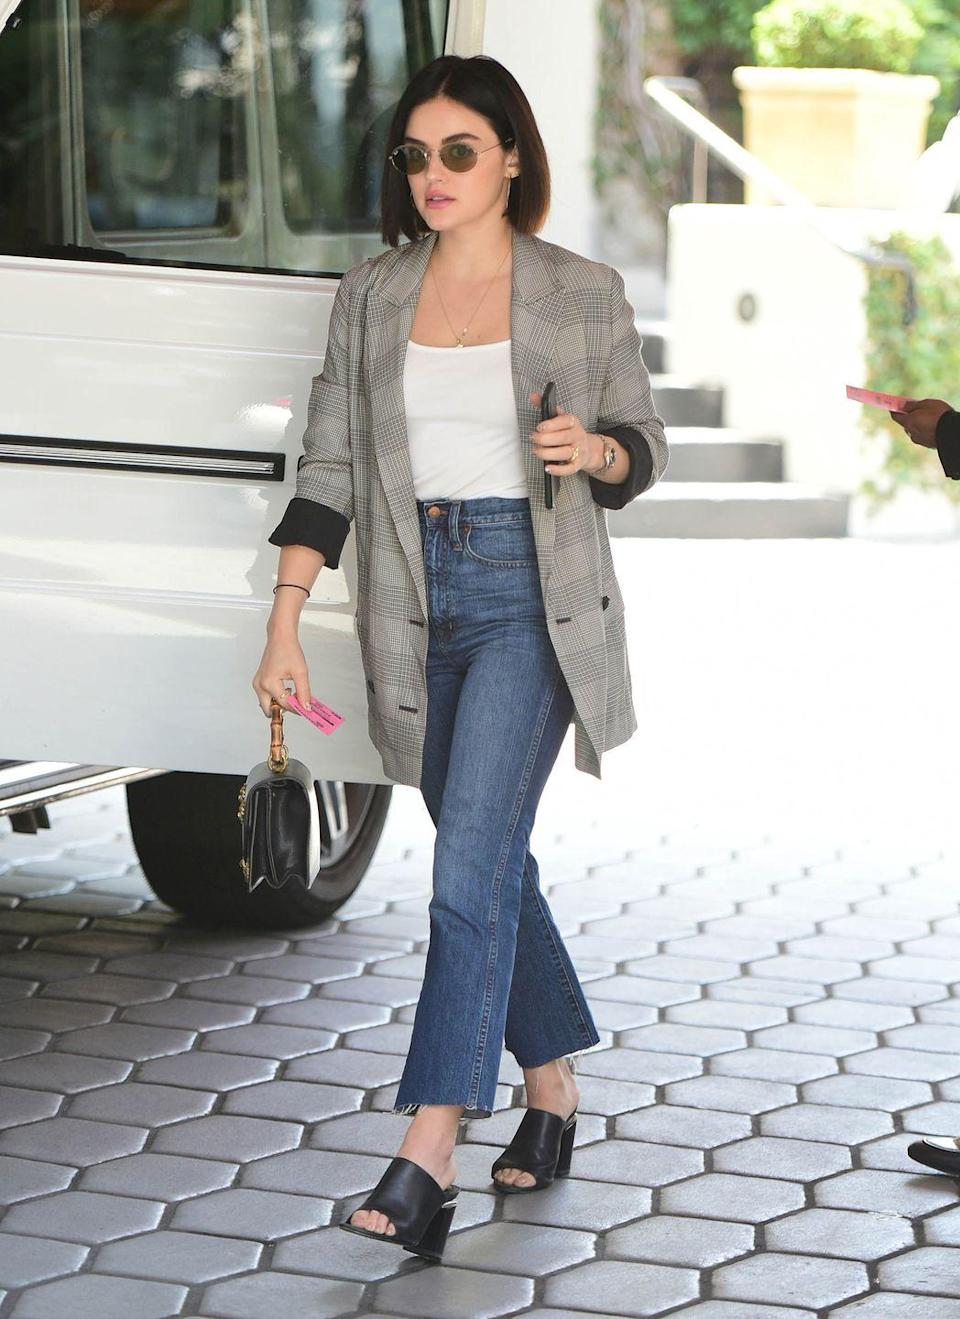 <p>A white tee, jeans, and a plaid blazer – it's an always-chic ensemble that you can wear literally anywhere. </p>